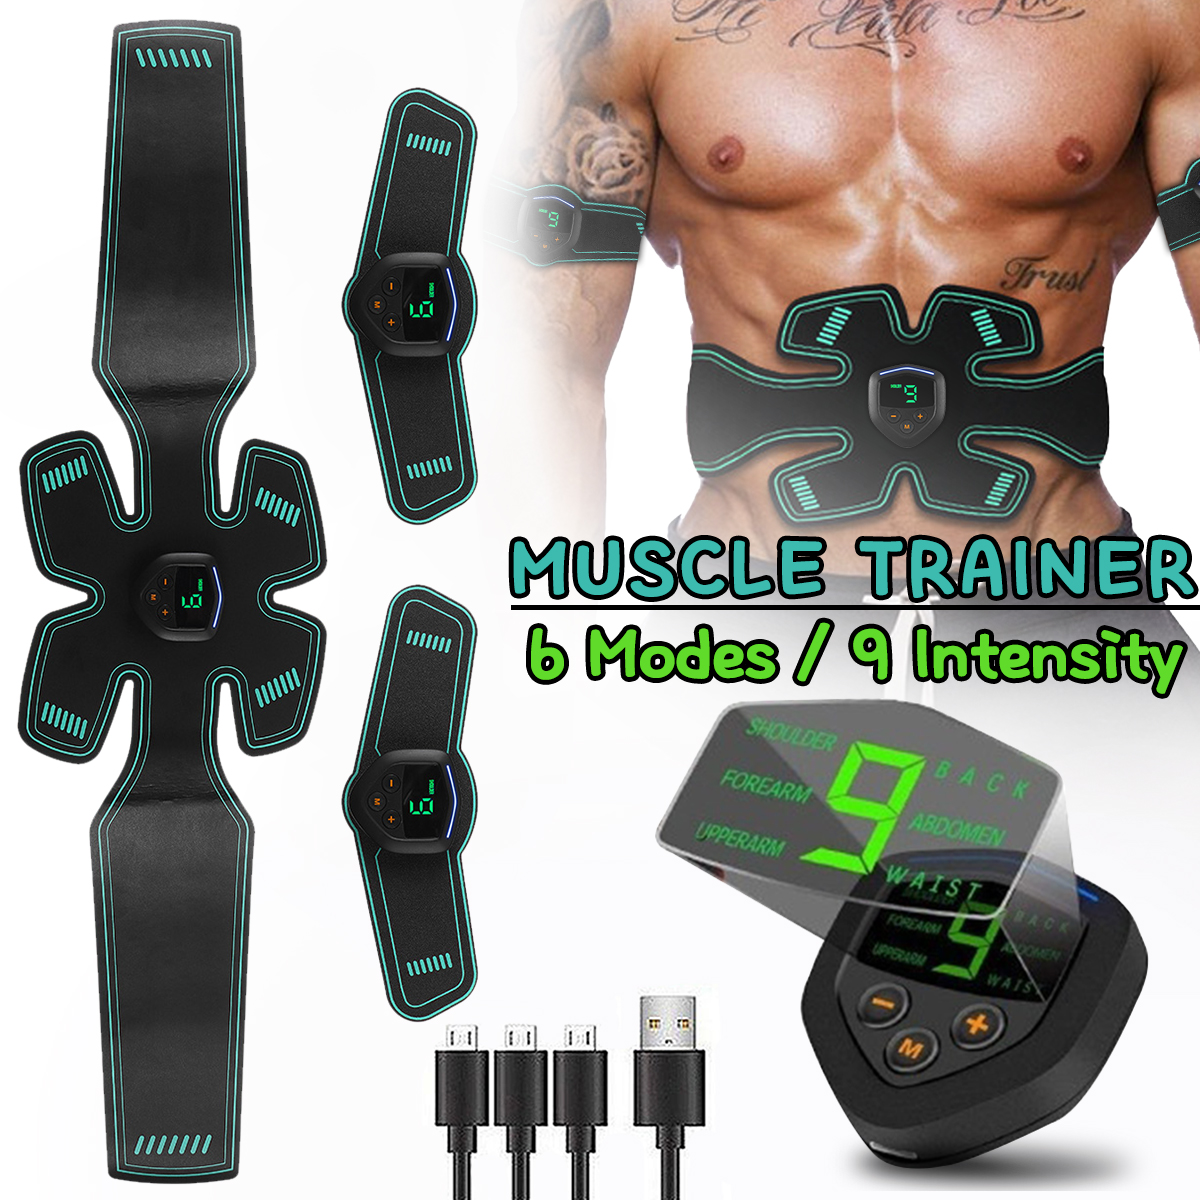 Digital Display Fitness Abdominal Muscle Training Stimulator Device Vibration Body Slimming Massager Rechargeable Muscle Trainer